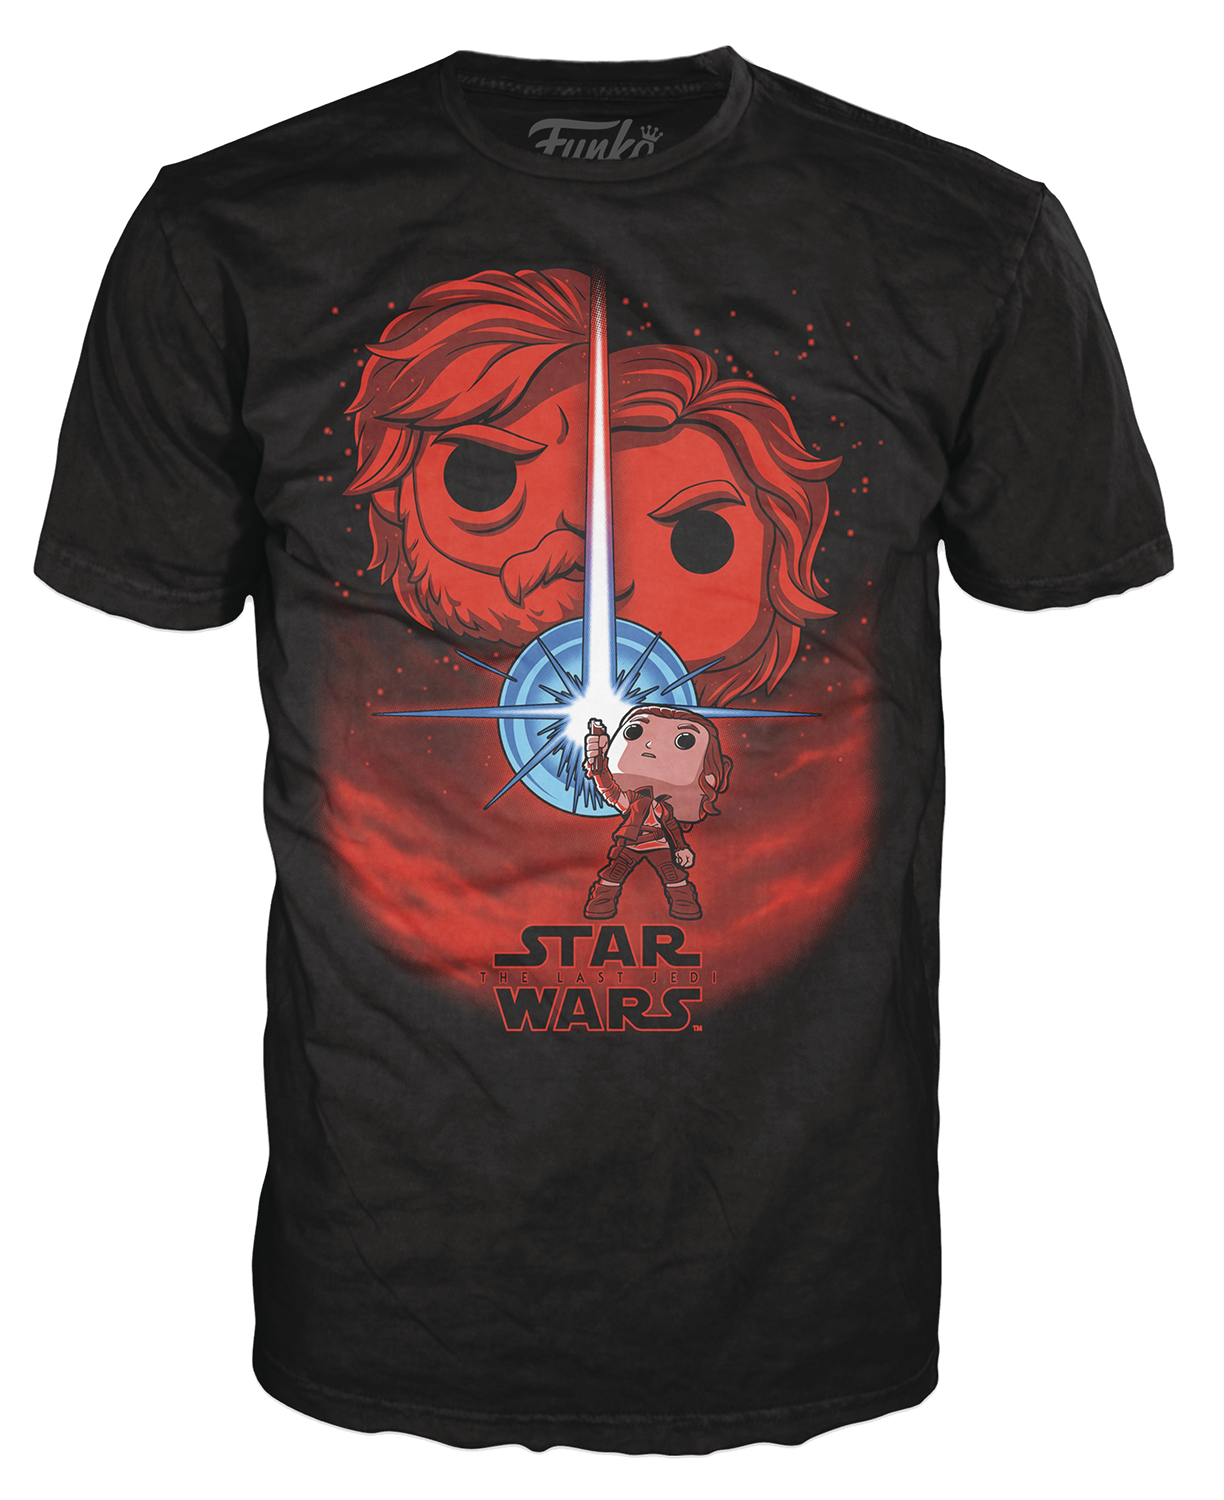 POP TEES THE LAST JEDI BLACK T/S MED